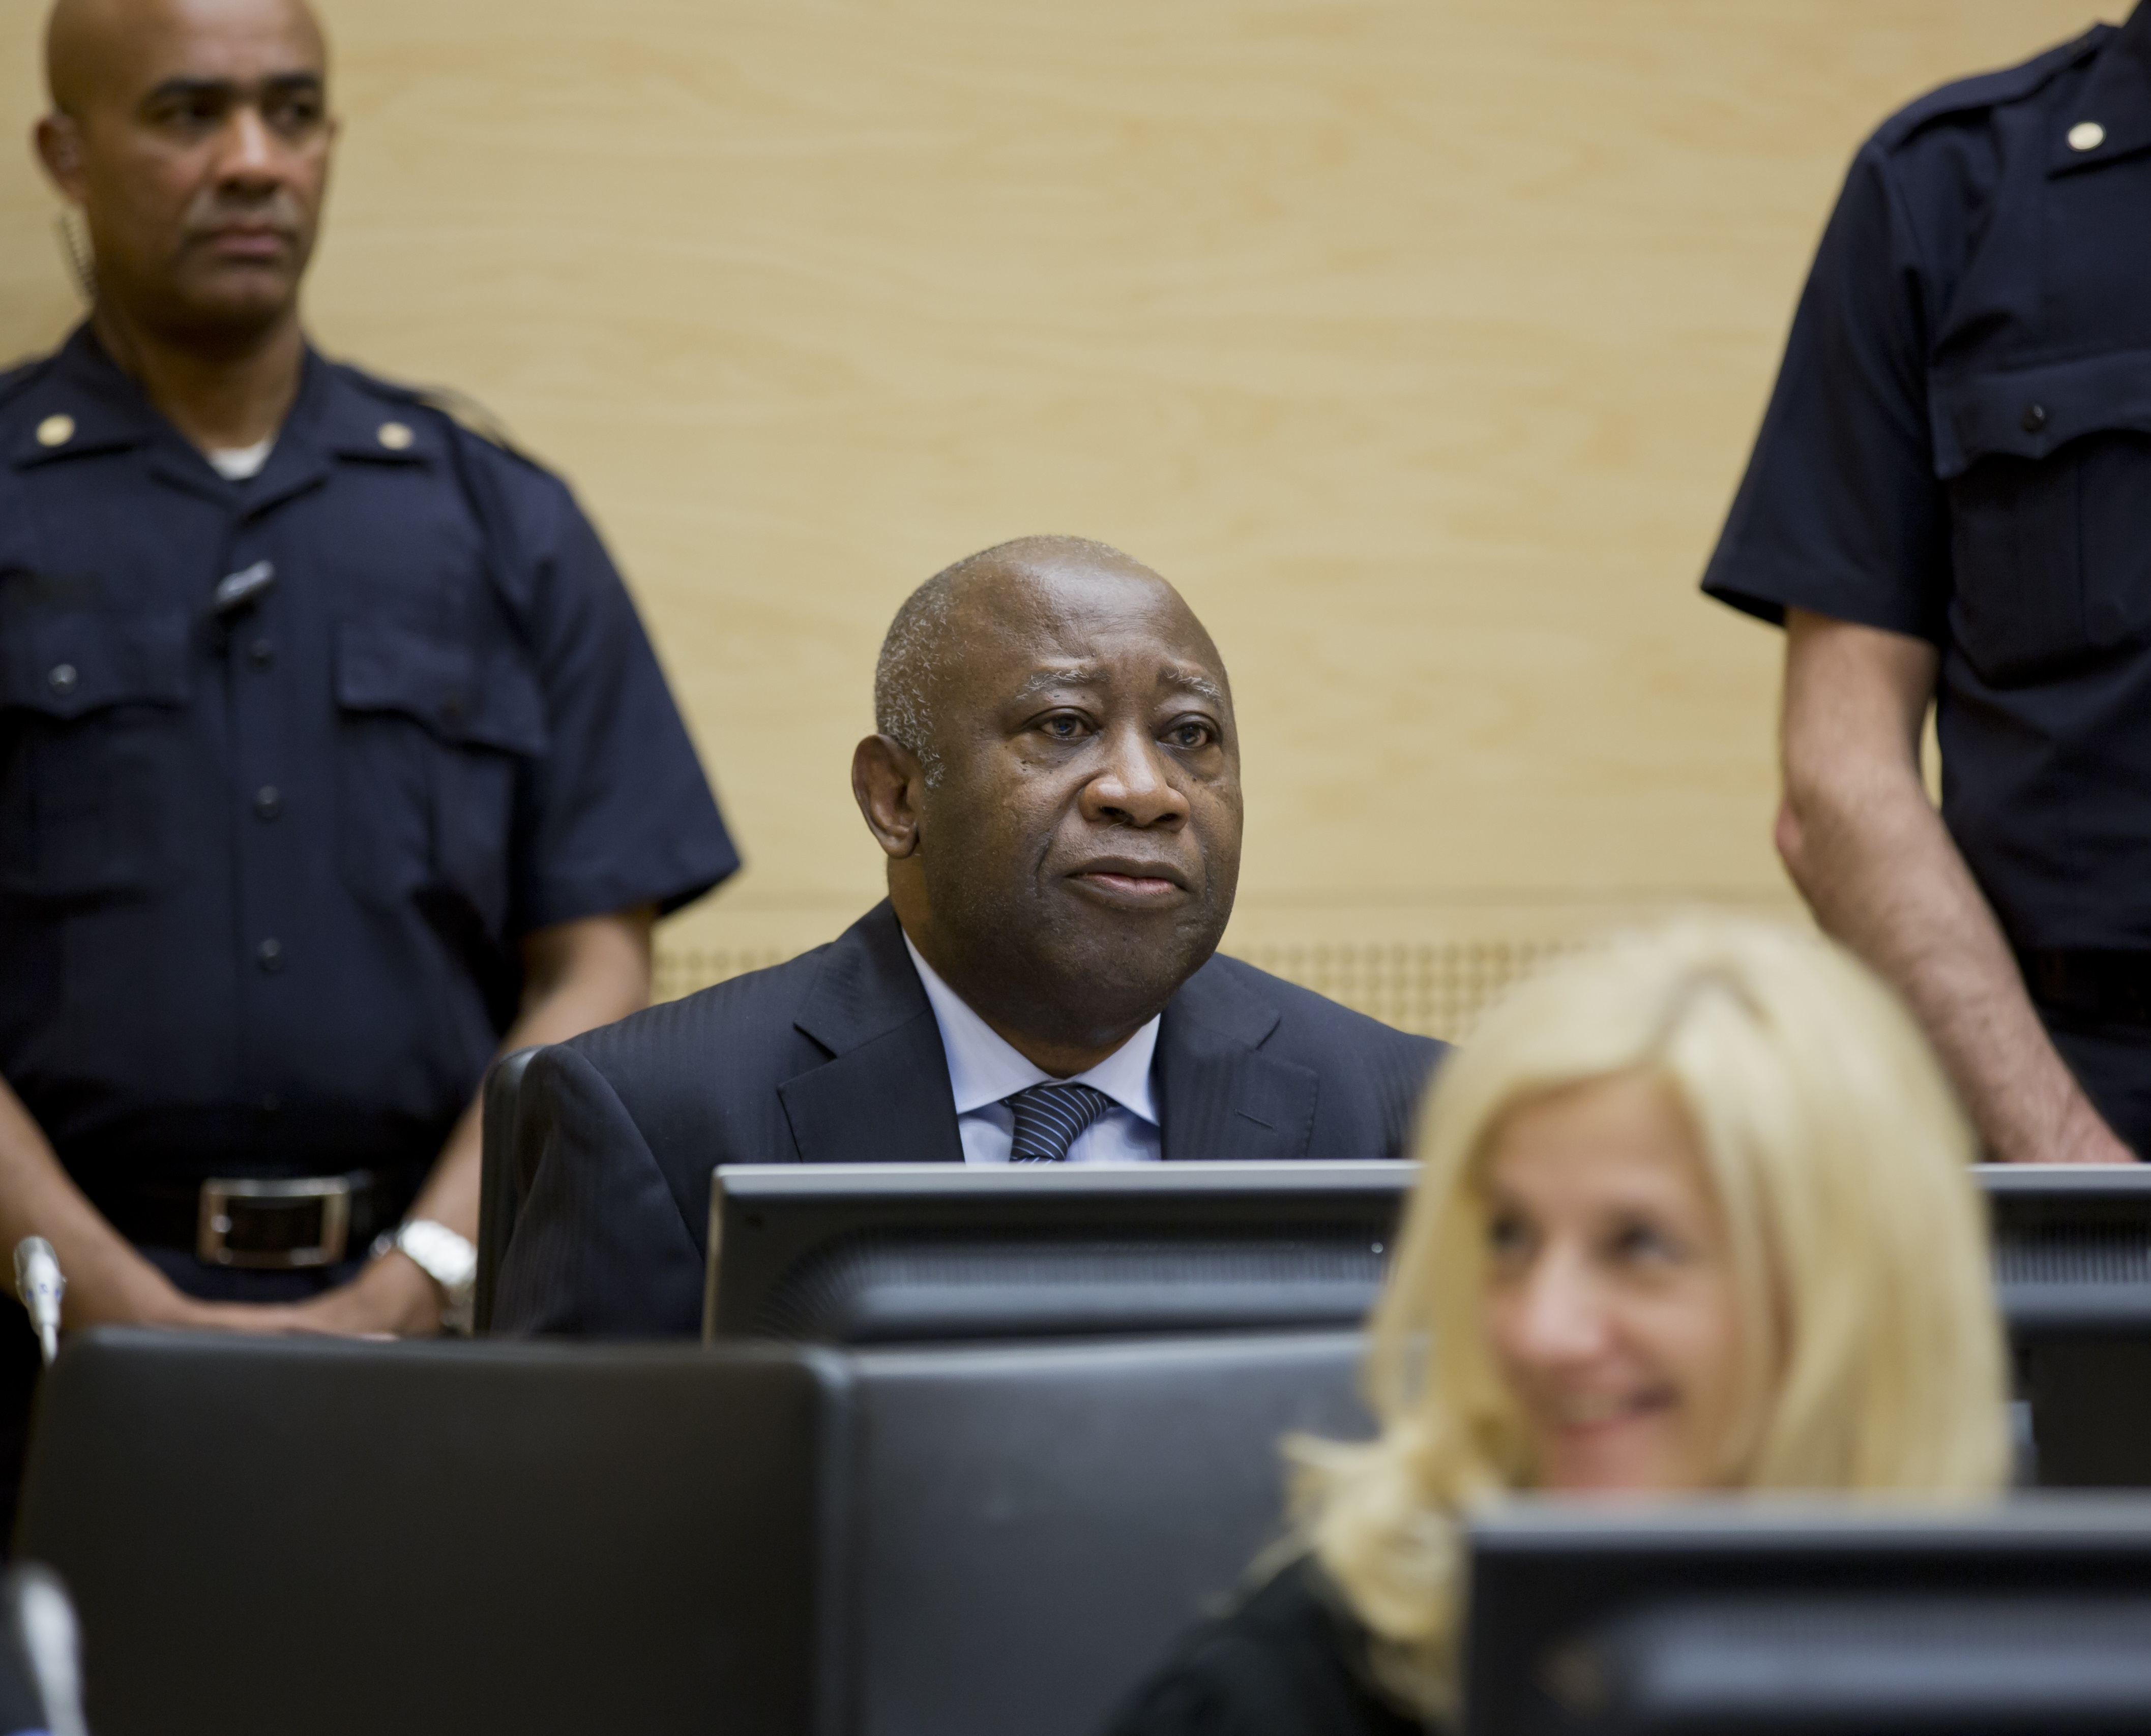 Laurent Gbagbo in Courtroom 1 of the International Criminal Court